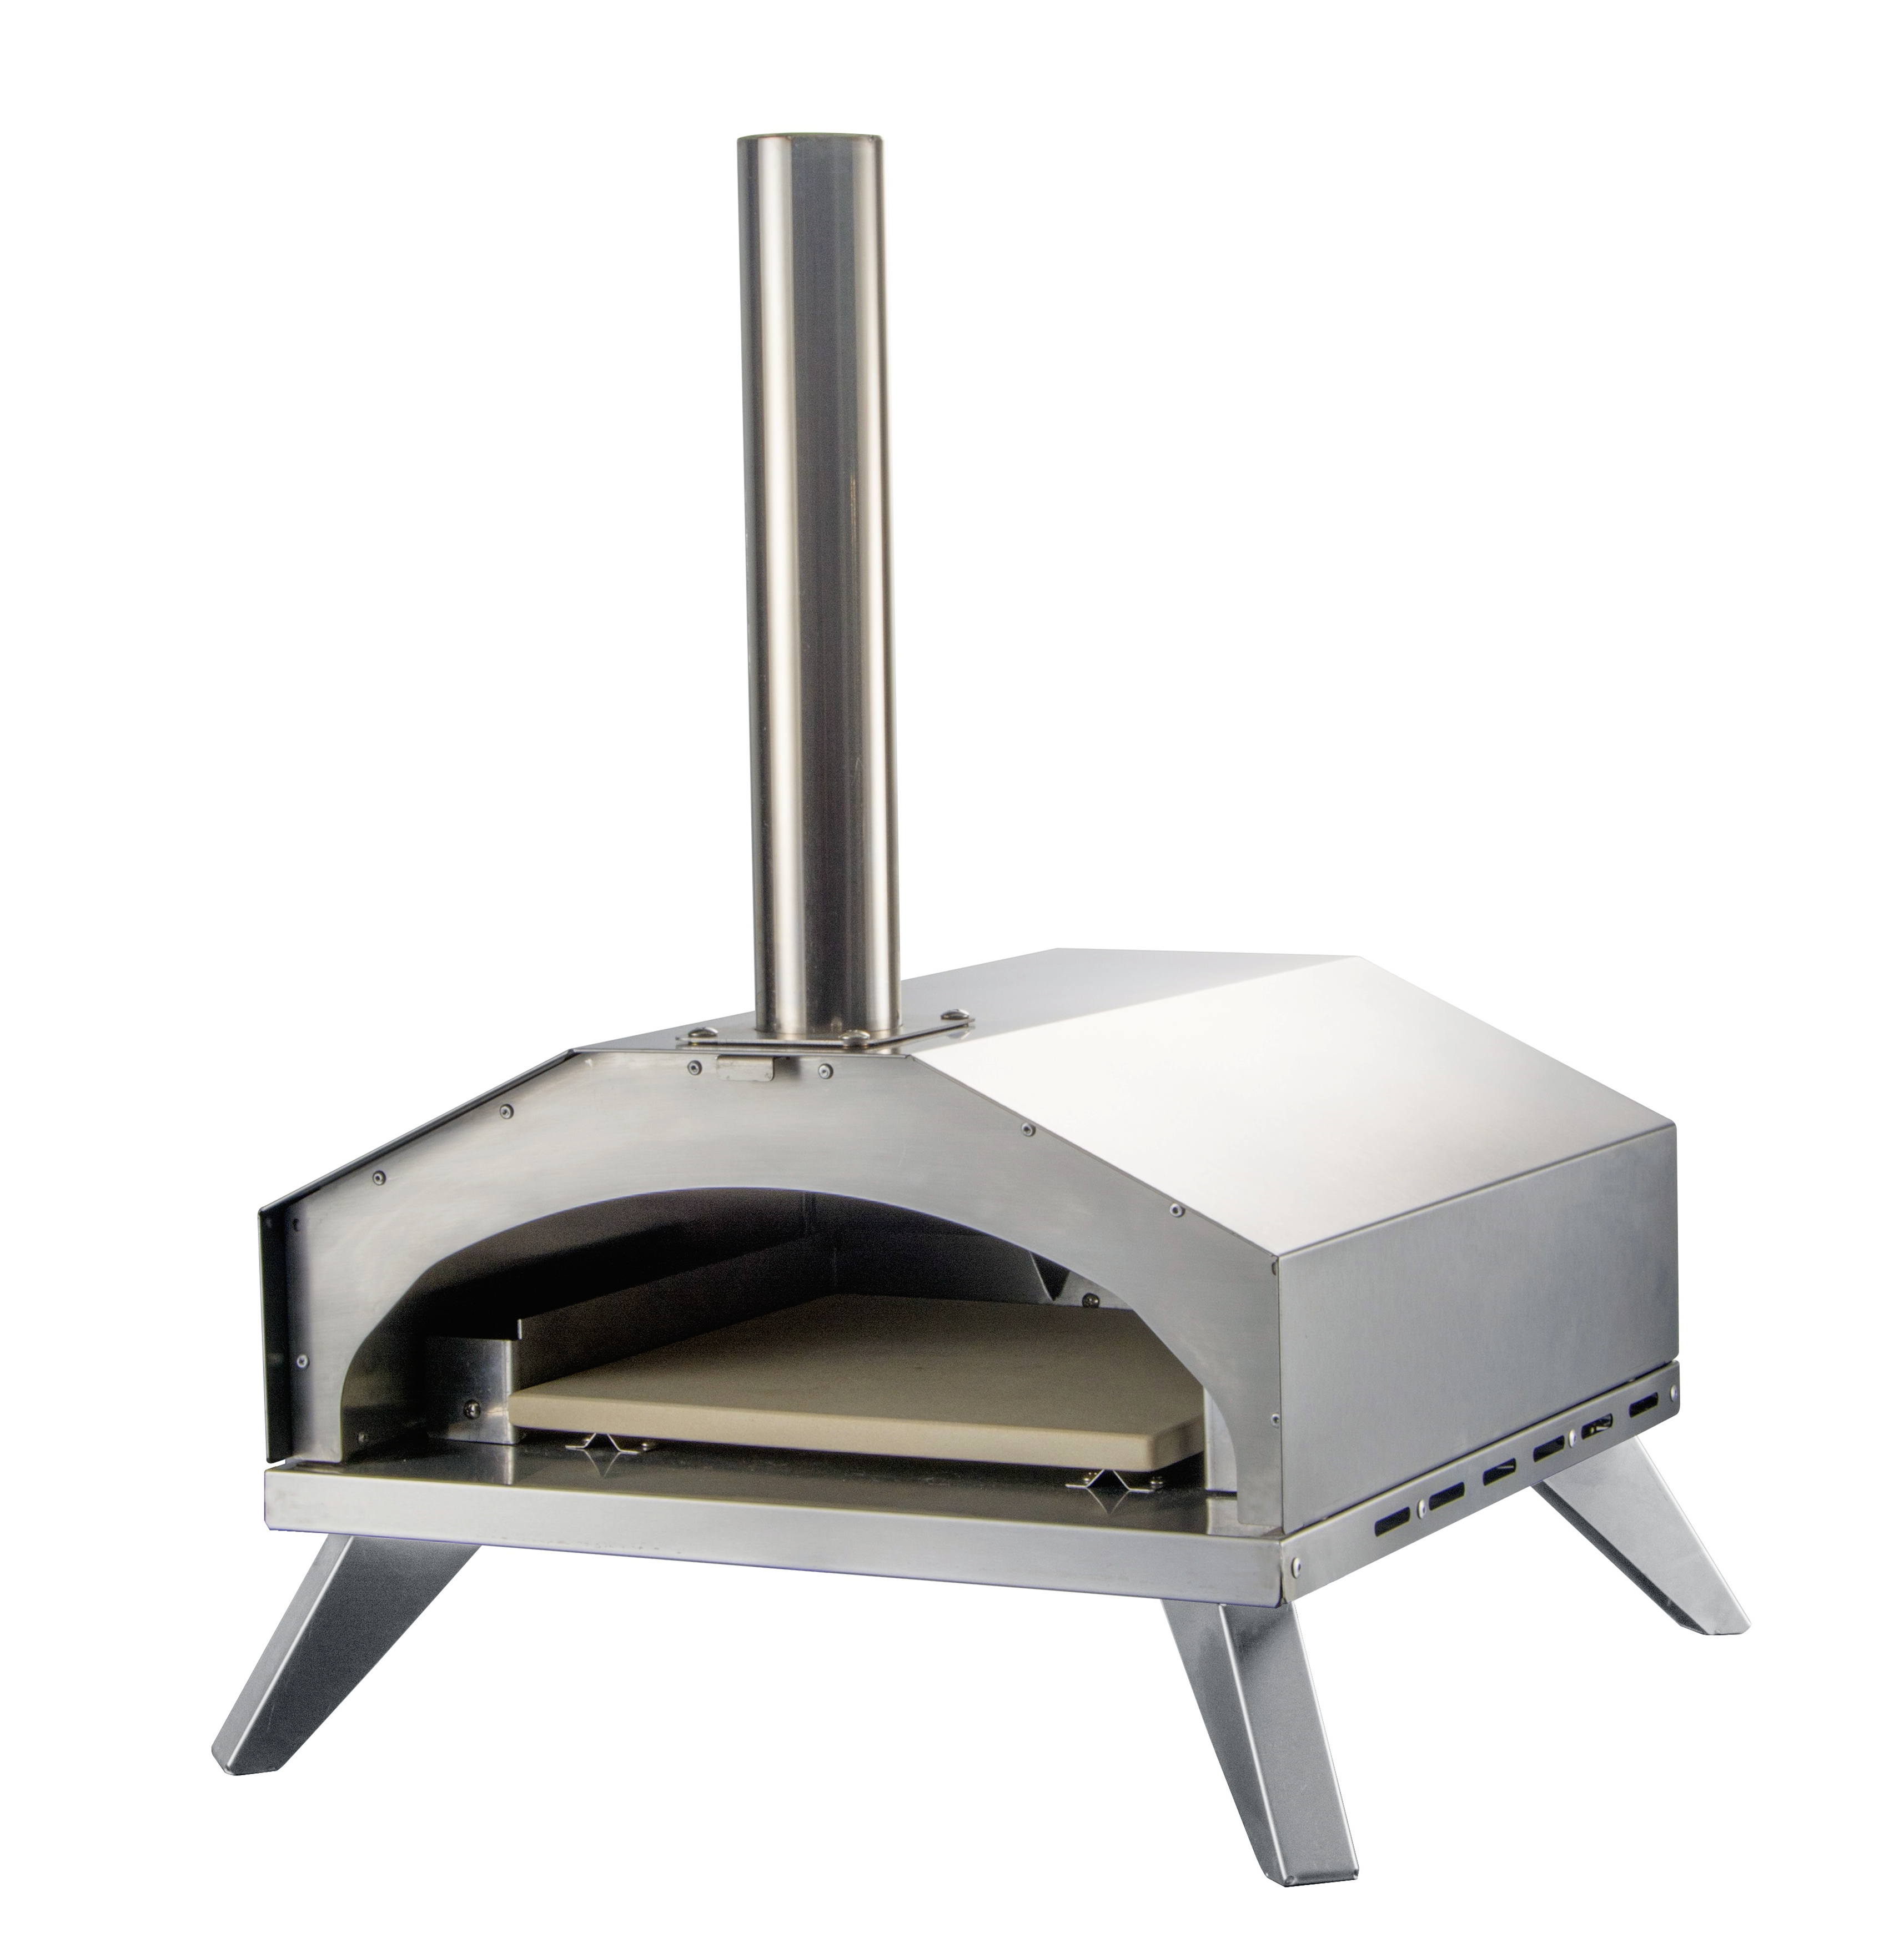 Stainless Steel Double Layers Pizza Oven